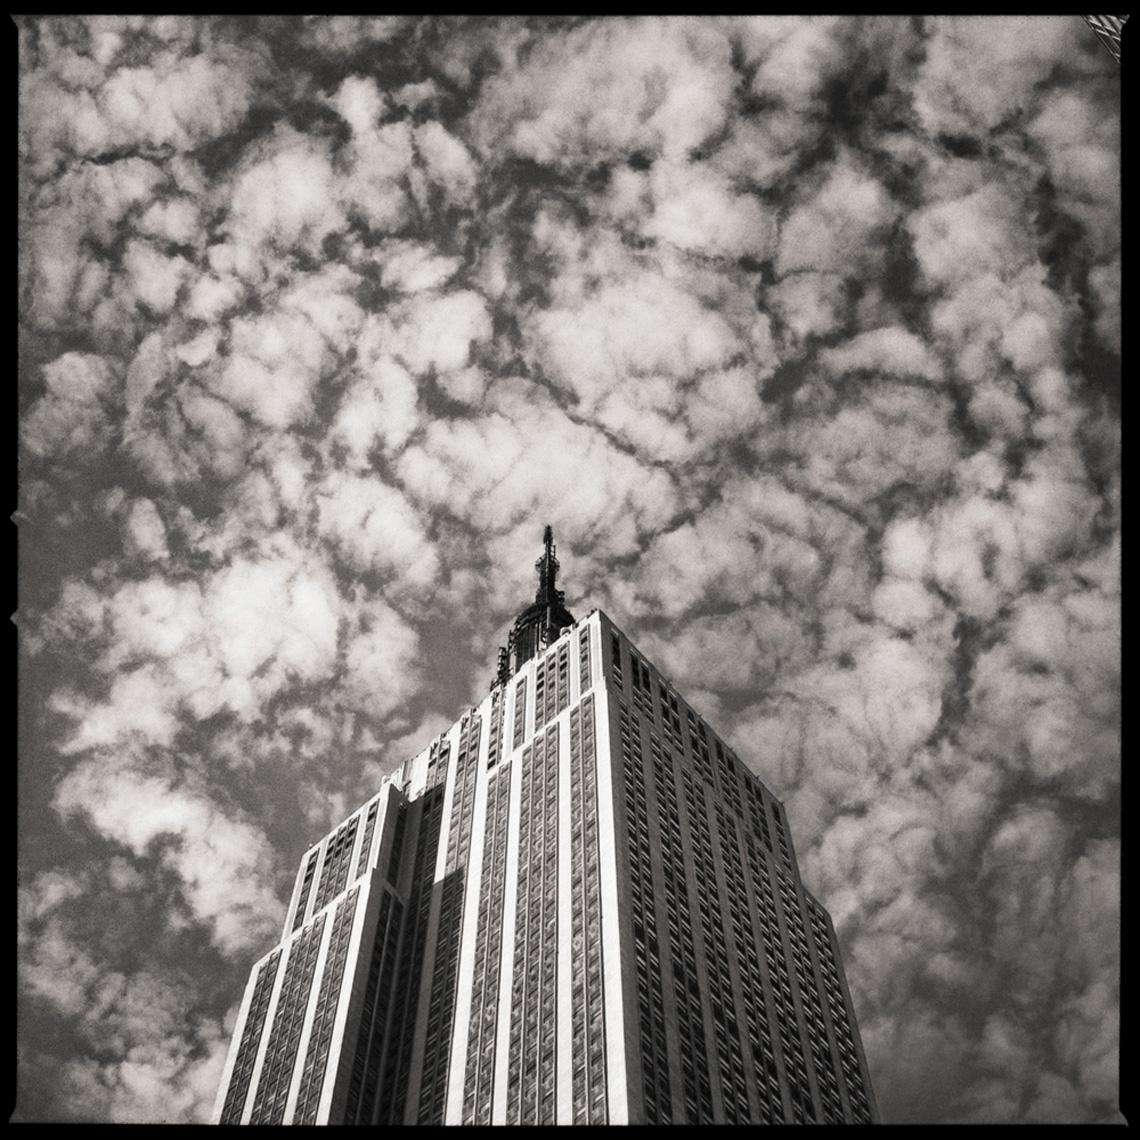 Sean Perry Photographs • The Empire State Building, from the series Monolith